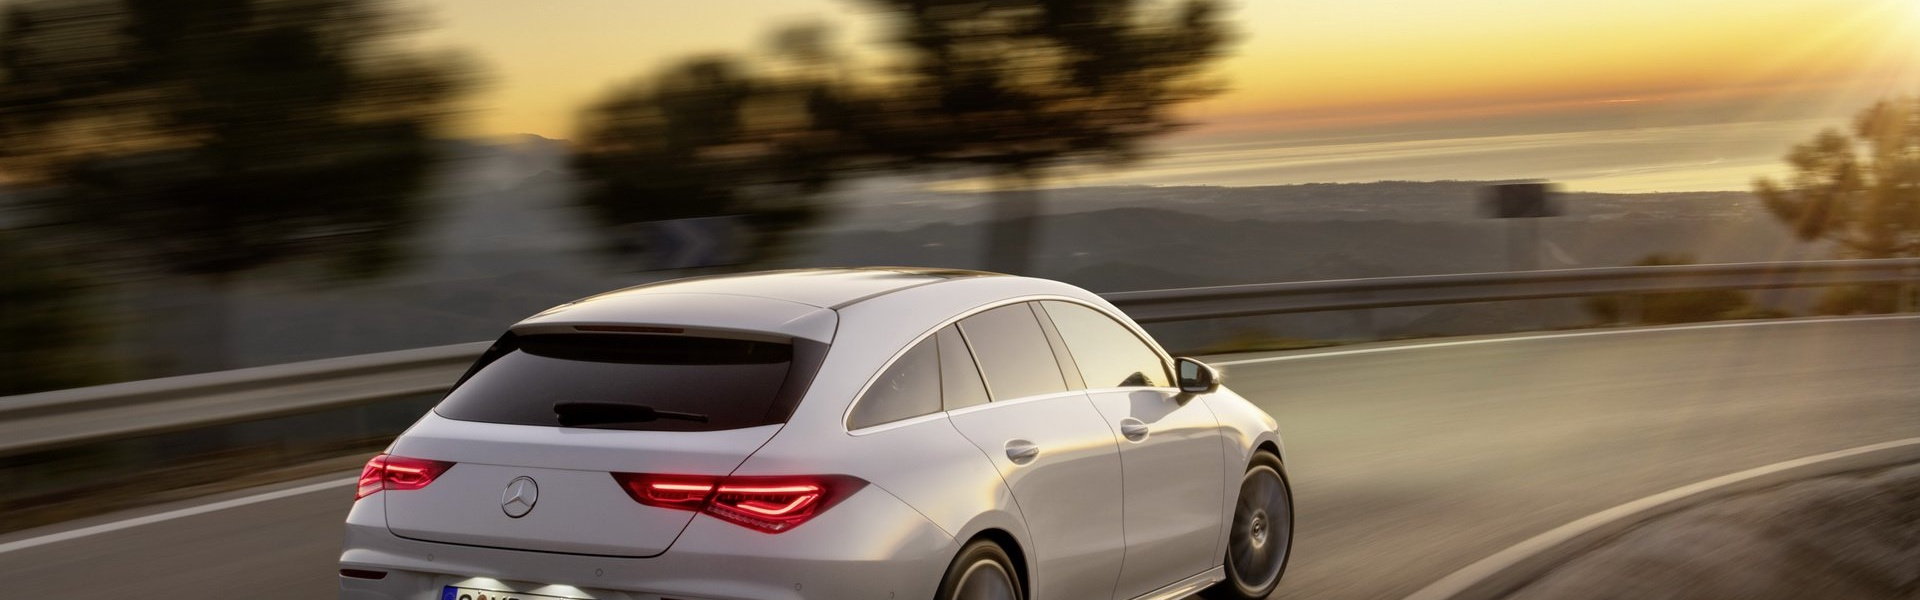 2019-mercedes-cla-shooting-brake-unveiled-24.jpg